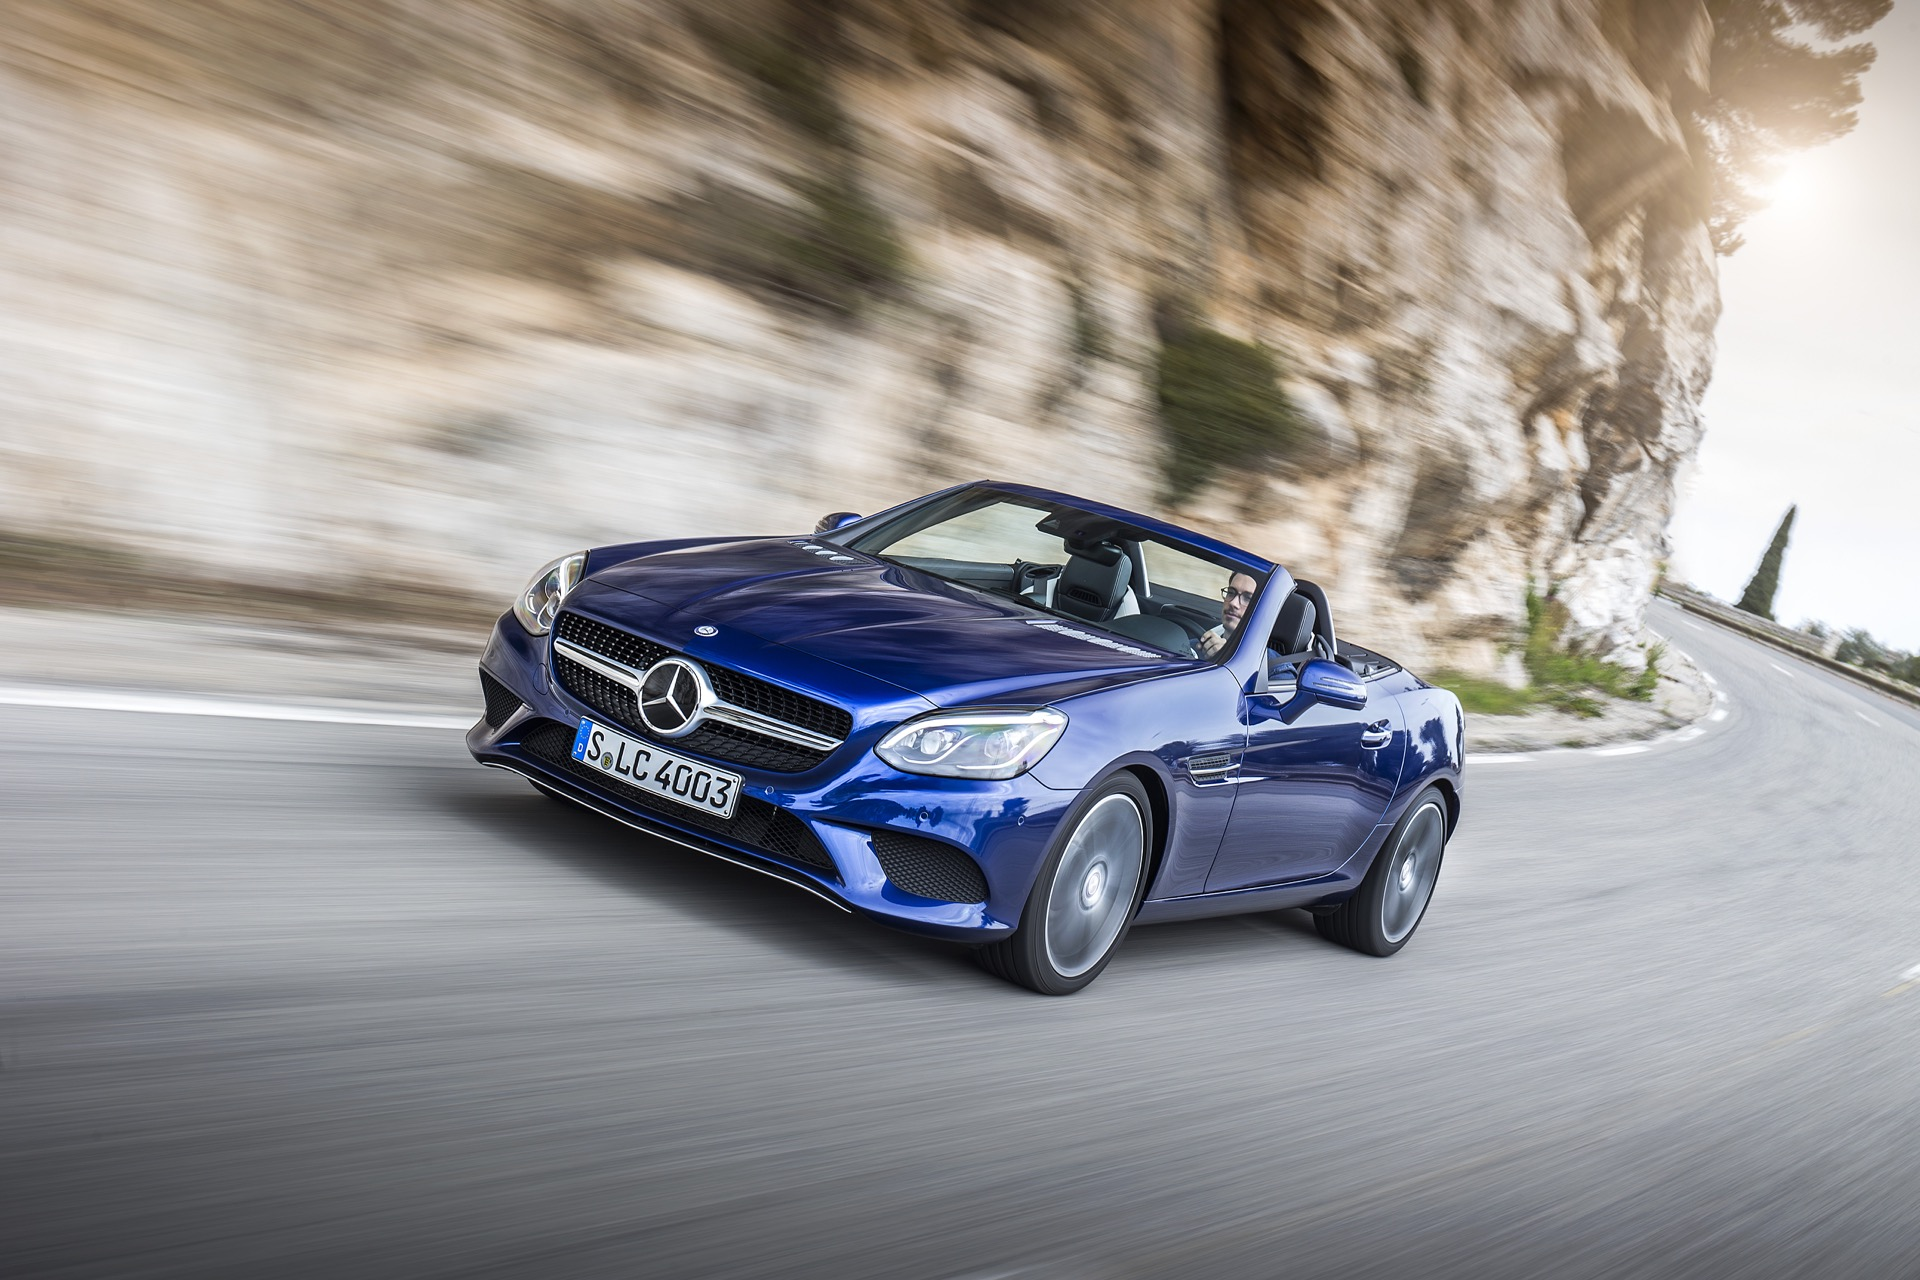 Bmw Of Dallas >> 2017 Mercedes-Benz SLC Class Features Review - The Car Connection